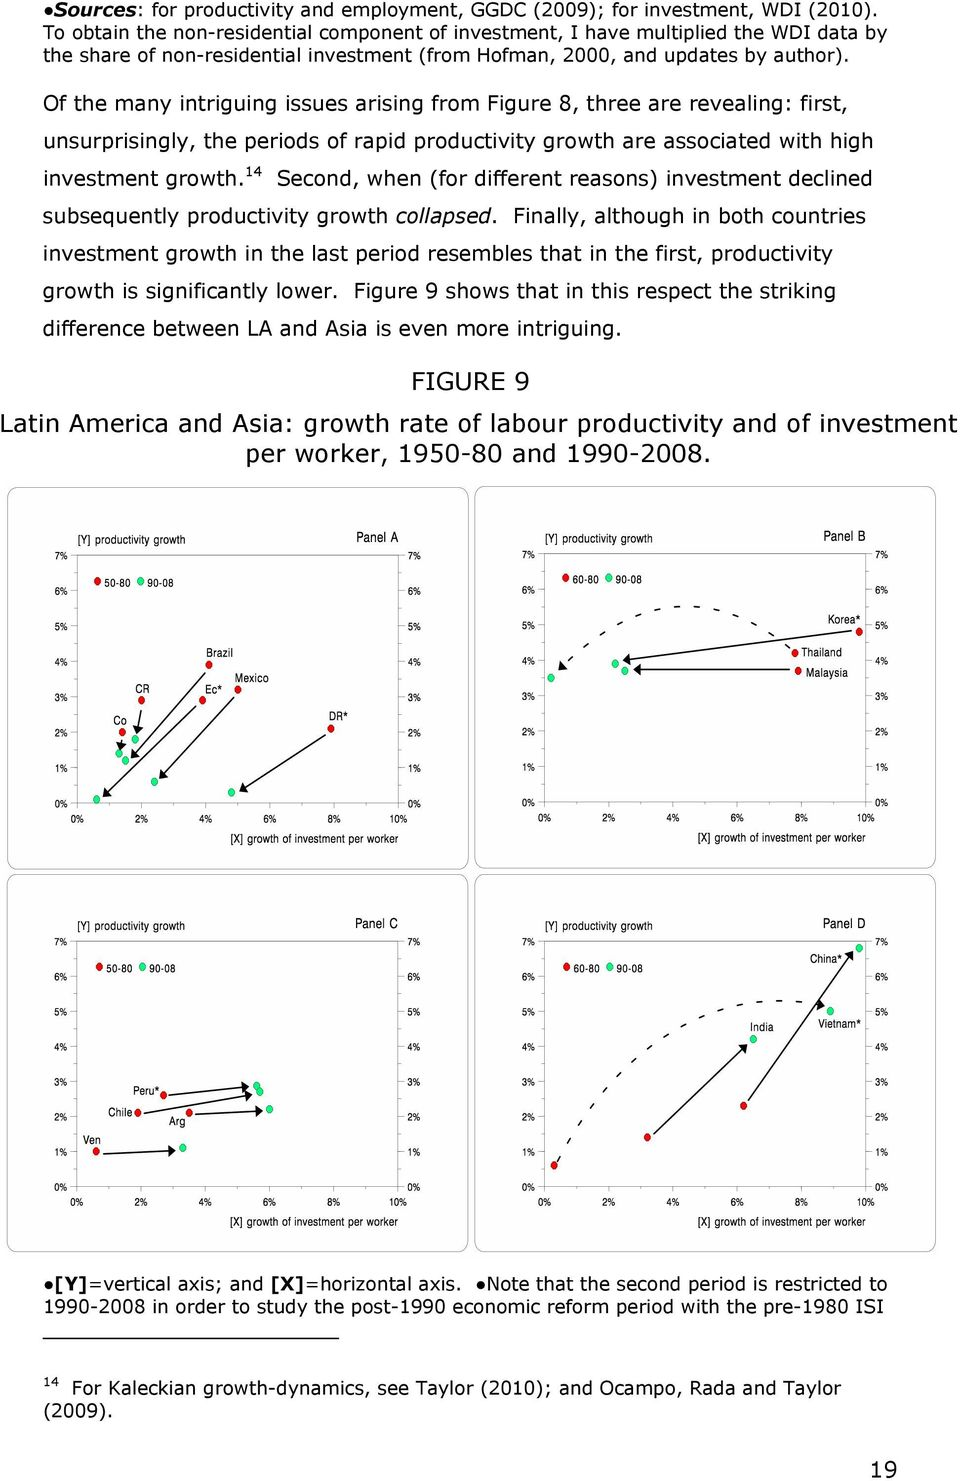 Of the many intriguing issues arising from Figure 8, three are revealing: first, unsurprisingly, the periods of rapid productivity growth are associated with high investment growth.